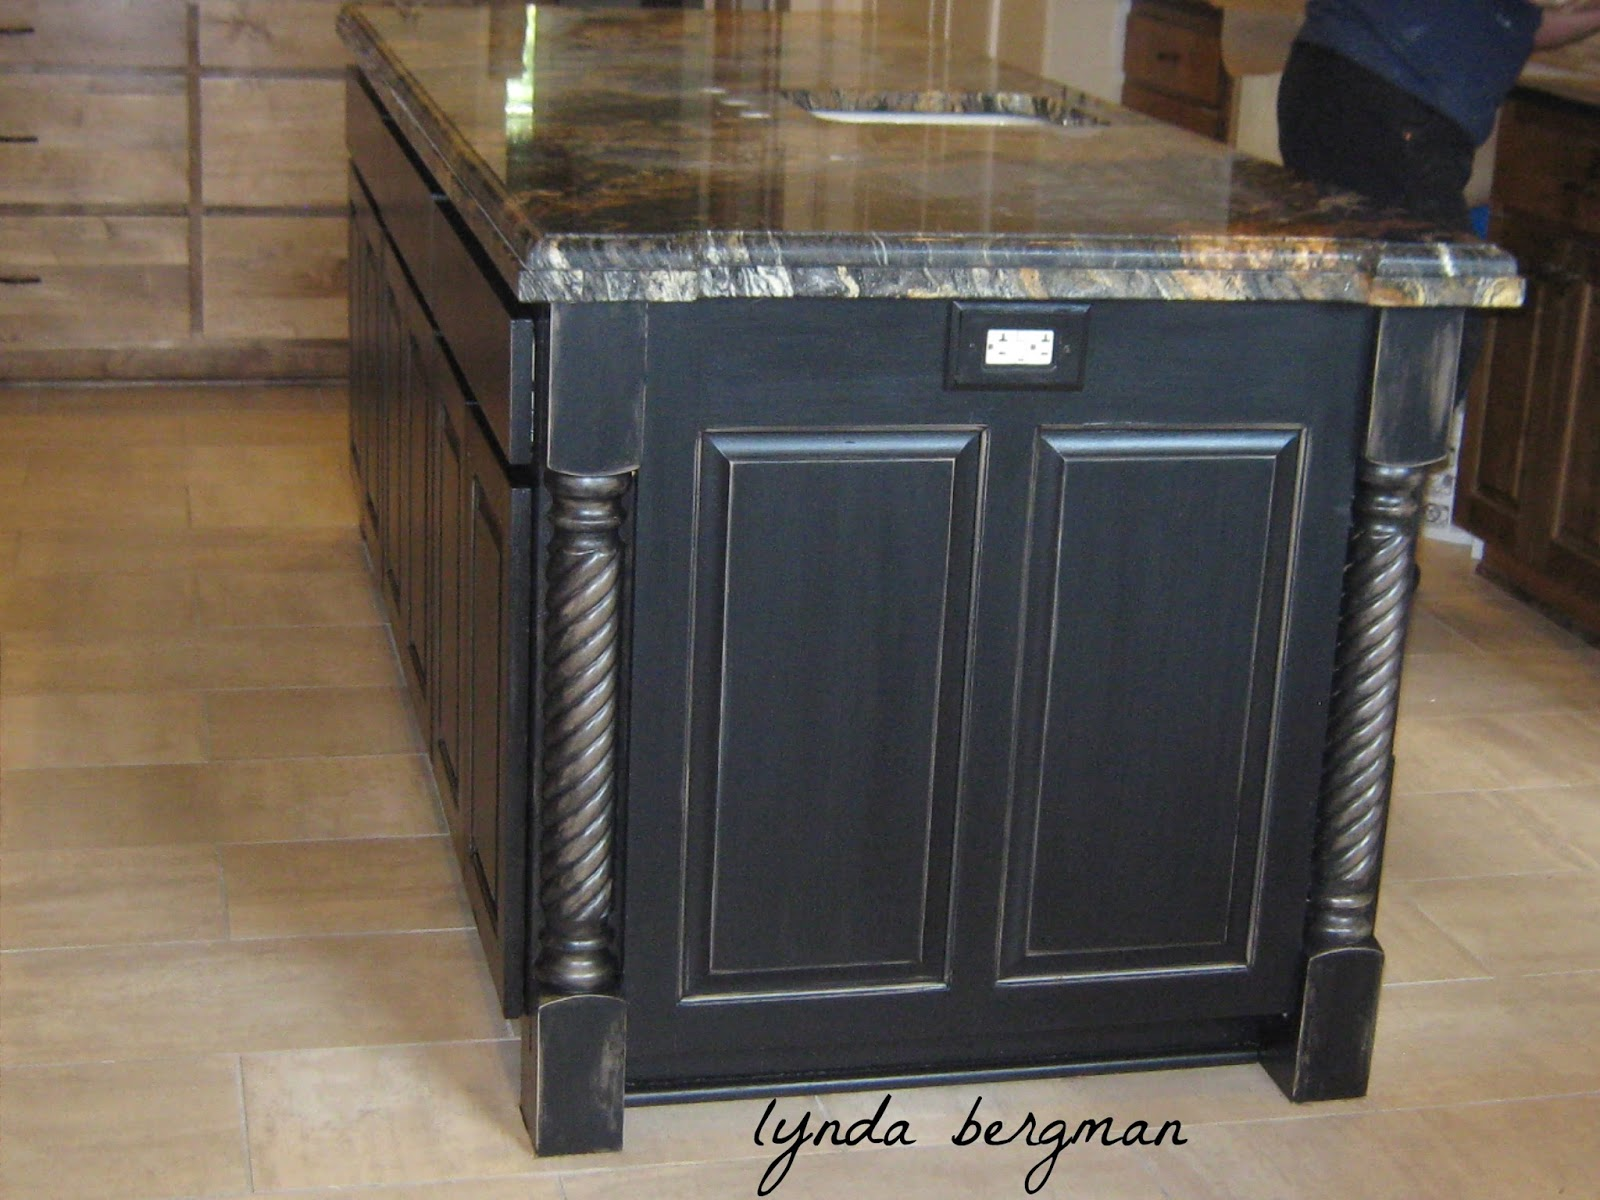 Lynda Bergman Decorative Artisan Painting Veronica S Kitchen Island Wine Cabinet To A Black Distressed Finish Her New Black Copper Stove Vent Hood